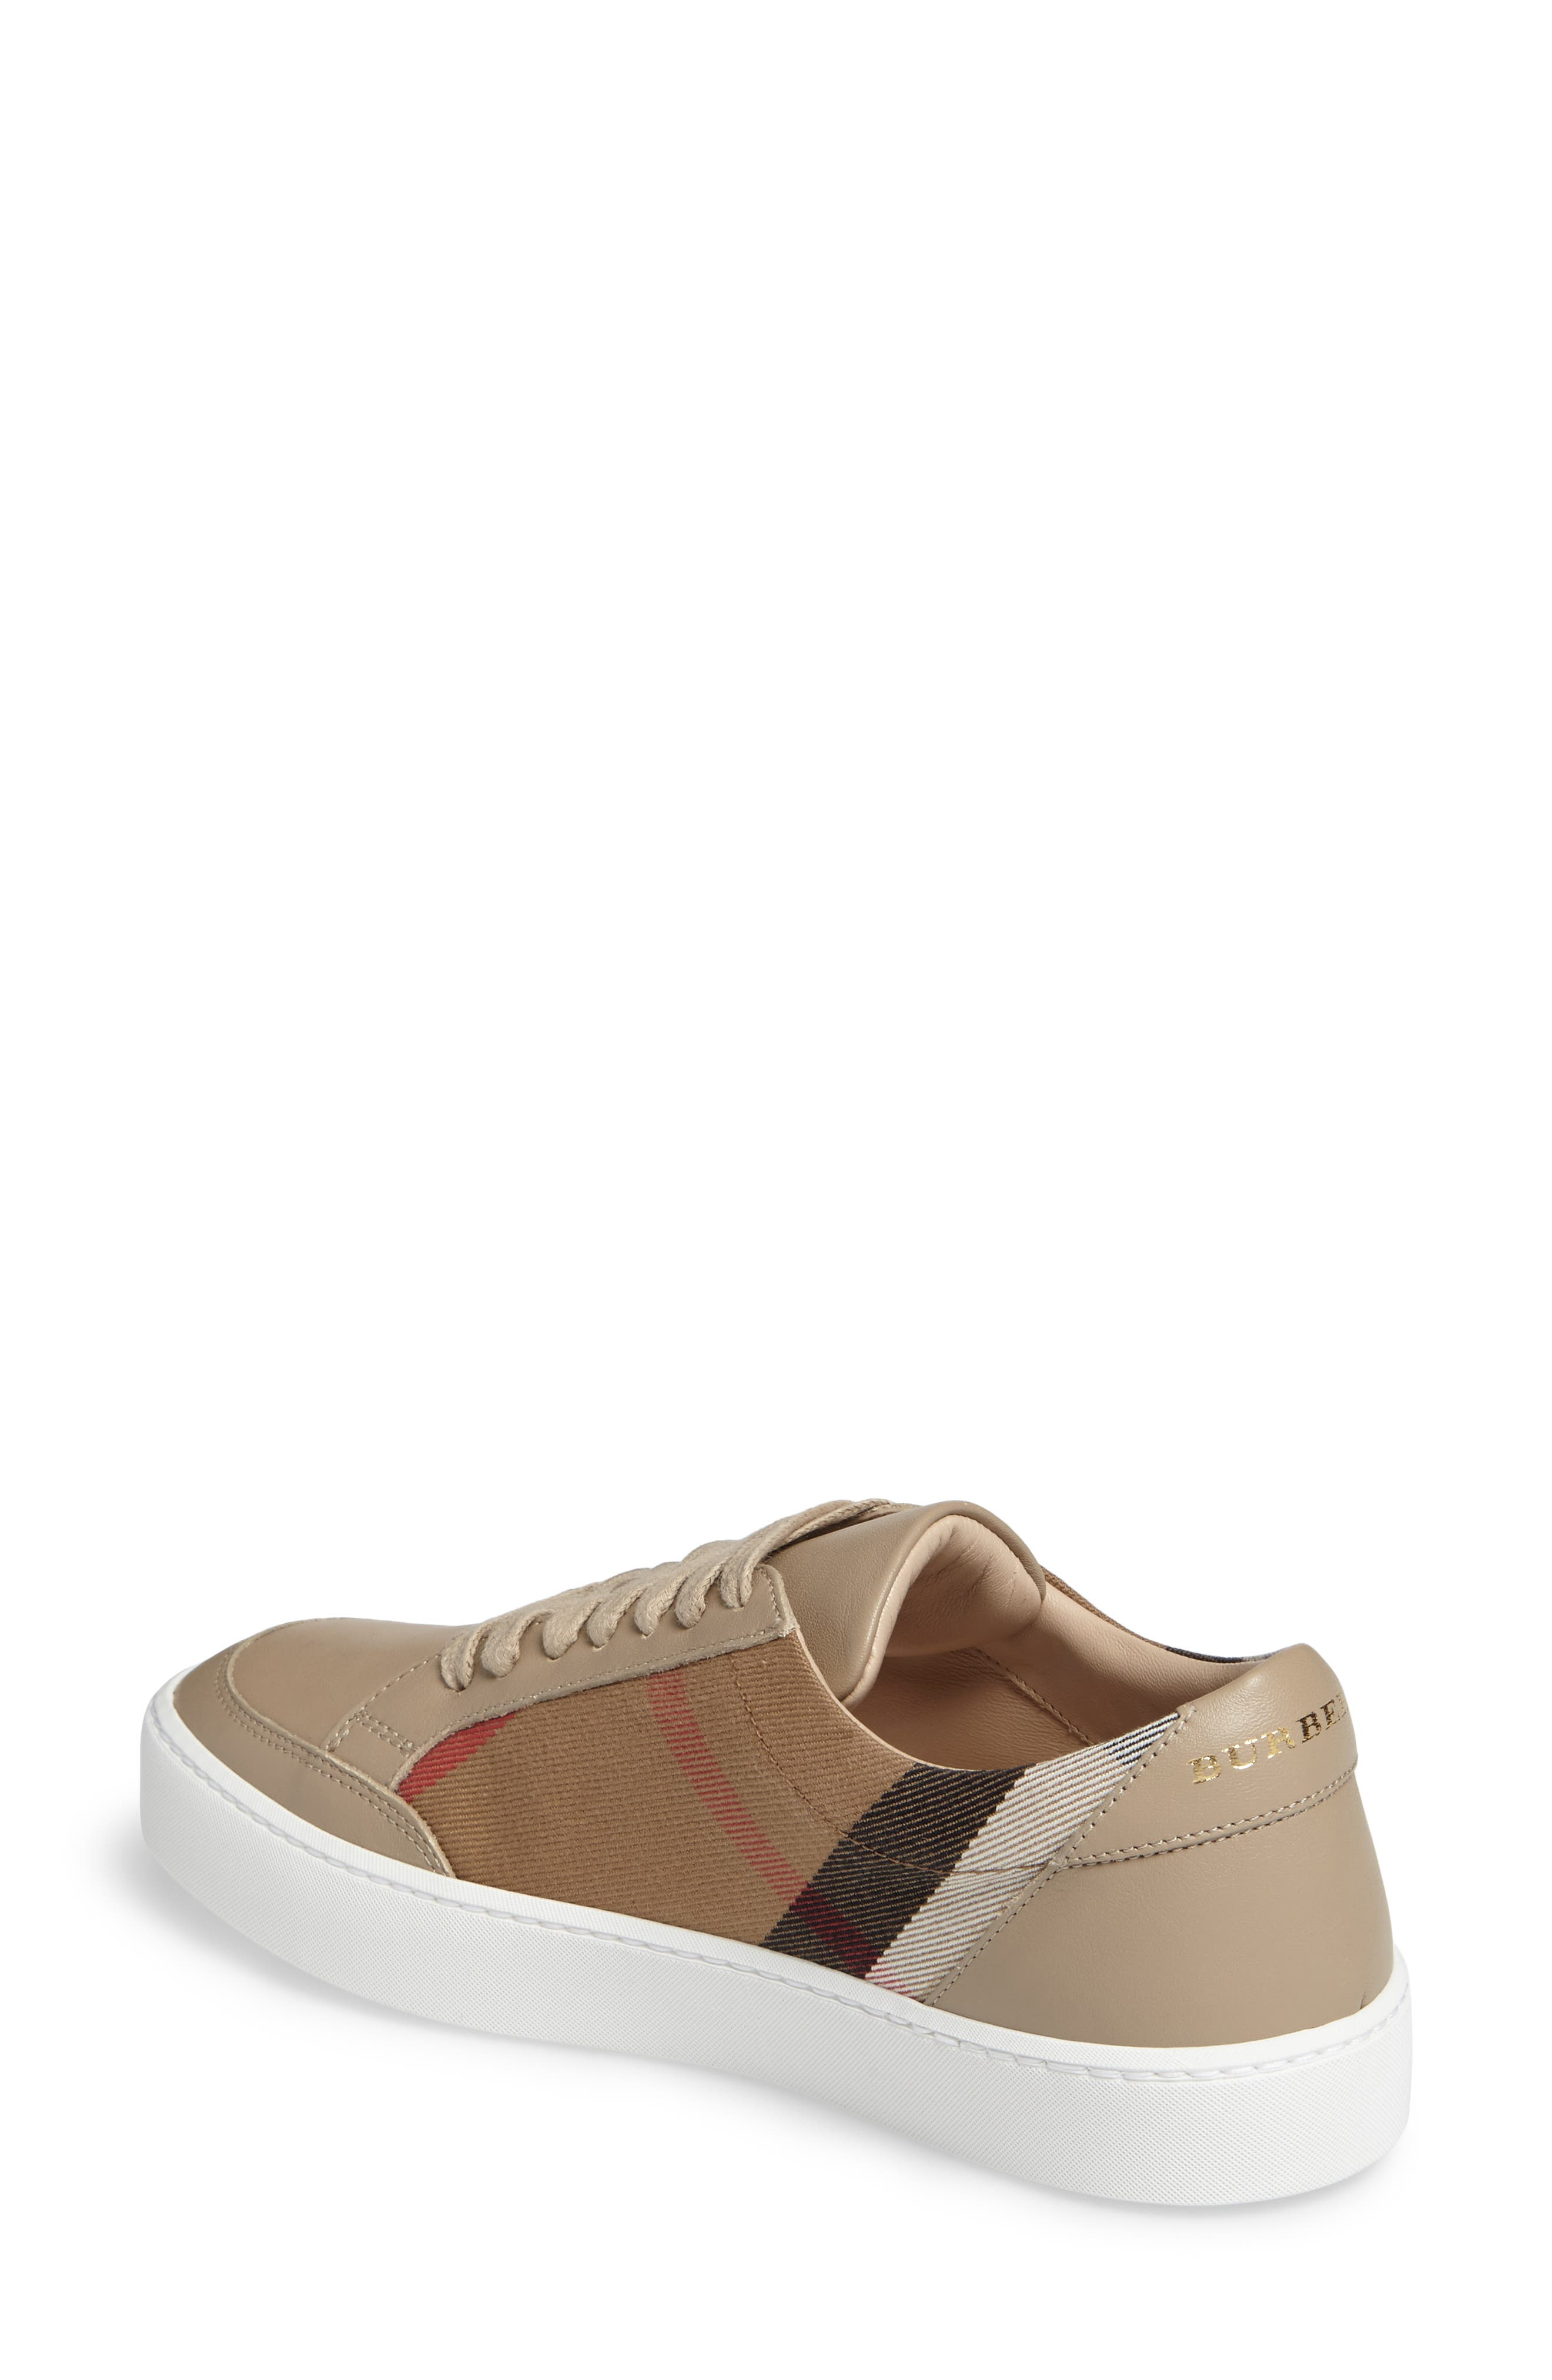 Salmond Sneaker,                             Alternate thumbnail 2, color,                             Nude